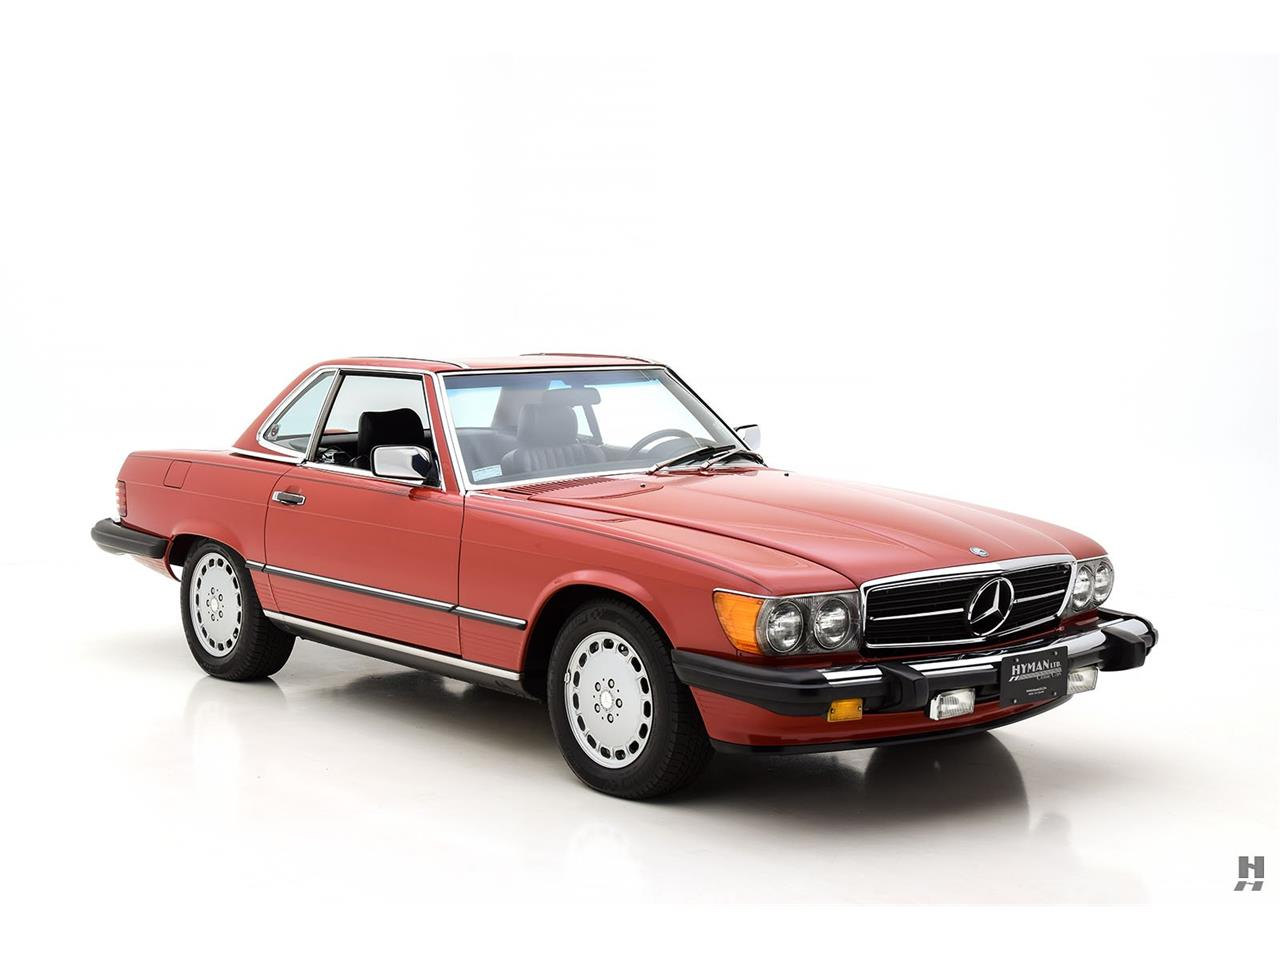 1987 Mercedes-Benz 560SL for sale in Saint Louis, MO – photo 42